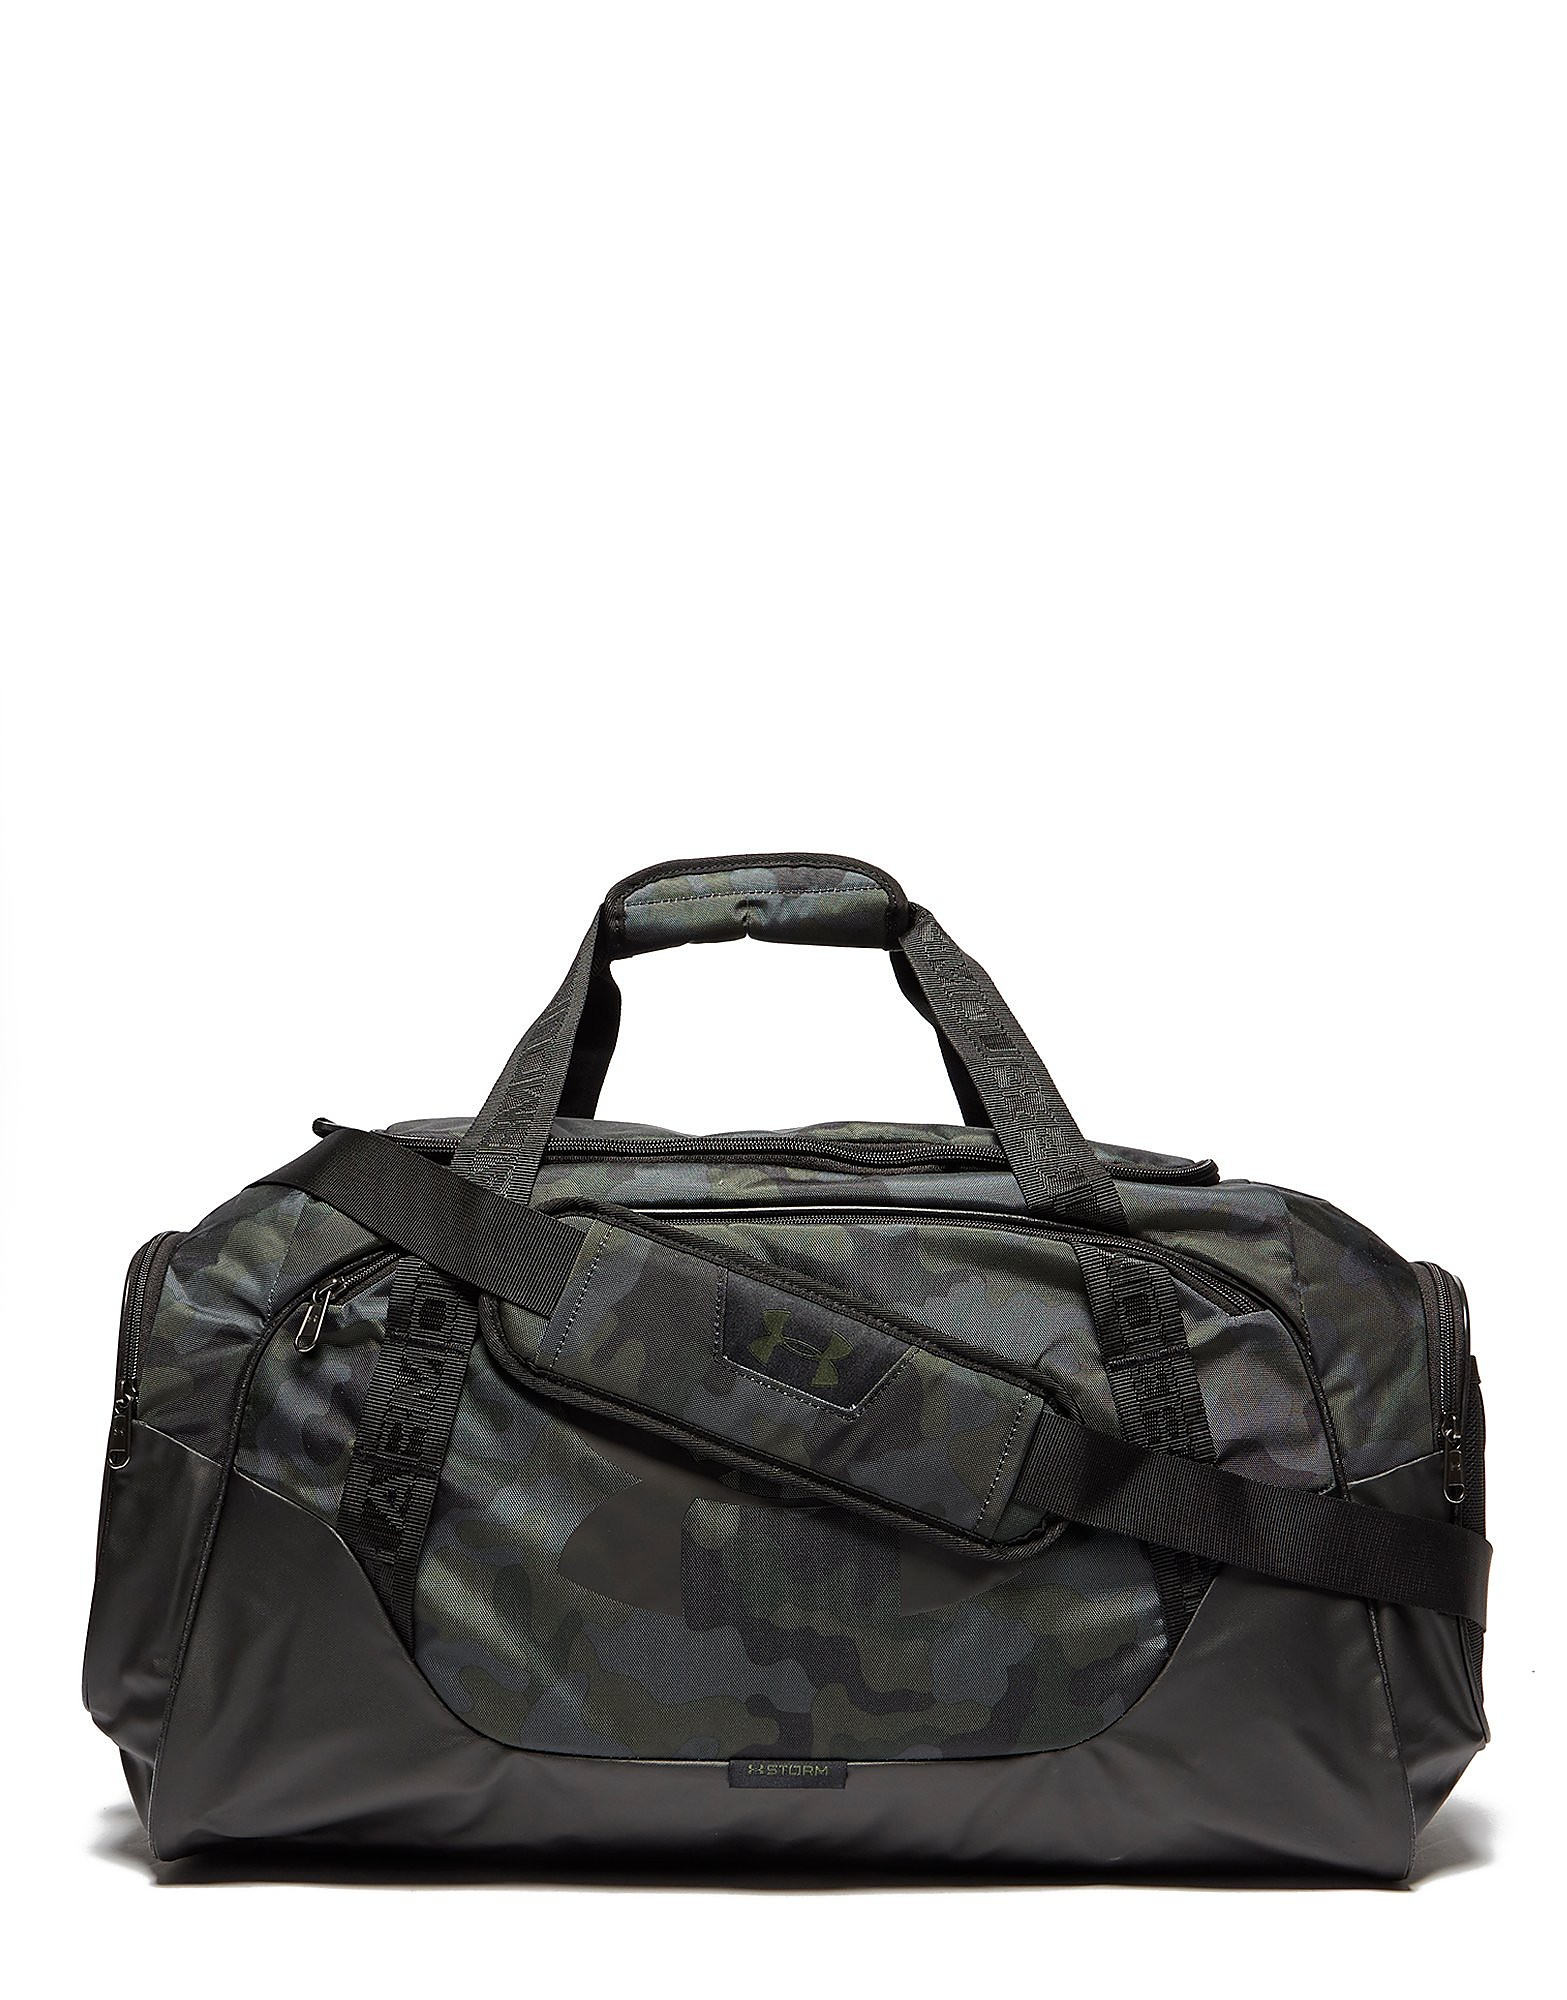 Under Armour Undeniable Medium Duffle Bag